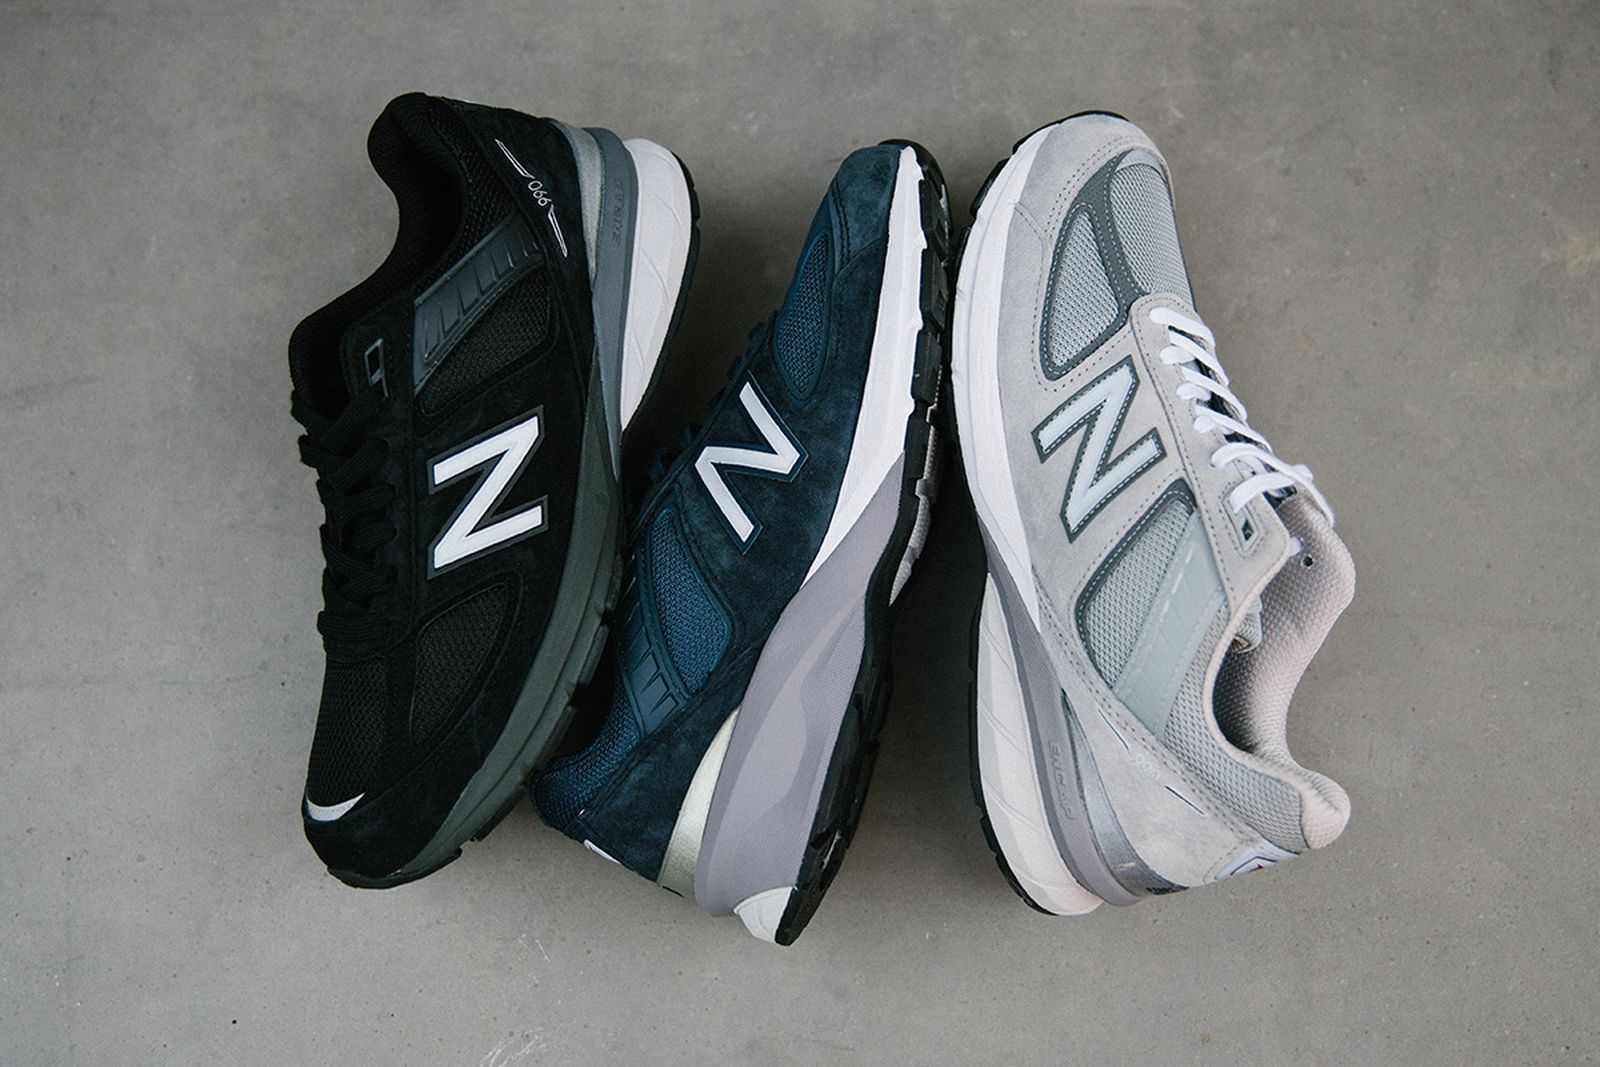 most-comfortable-sneakers-on-new-balance-990v5